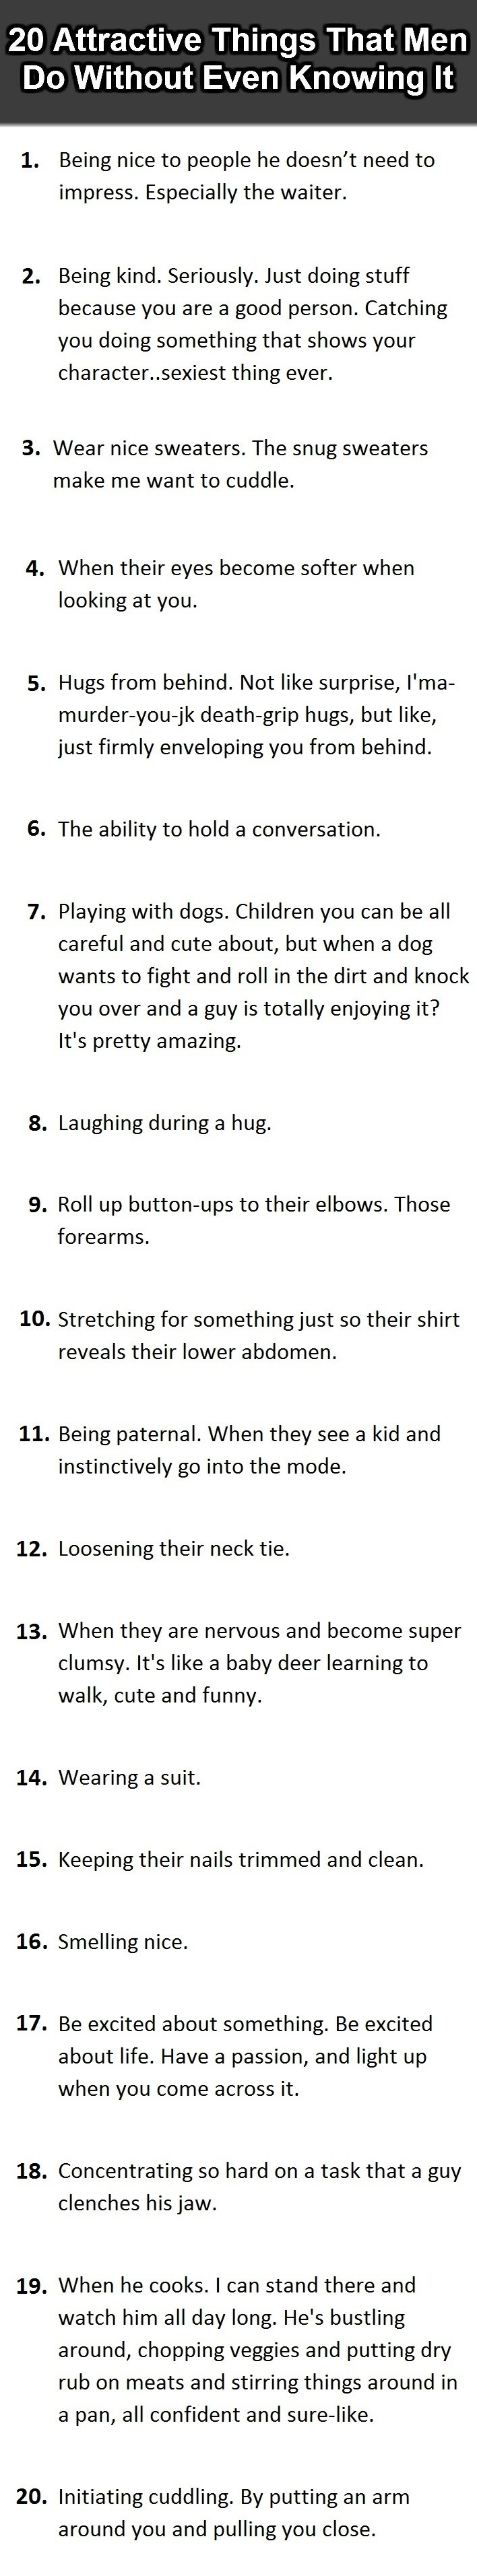 20 attractive things men do